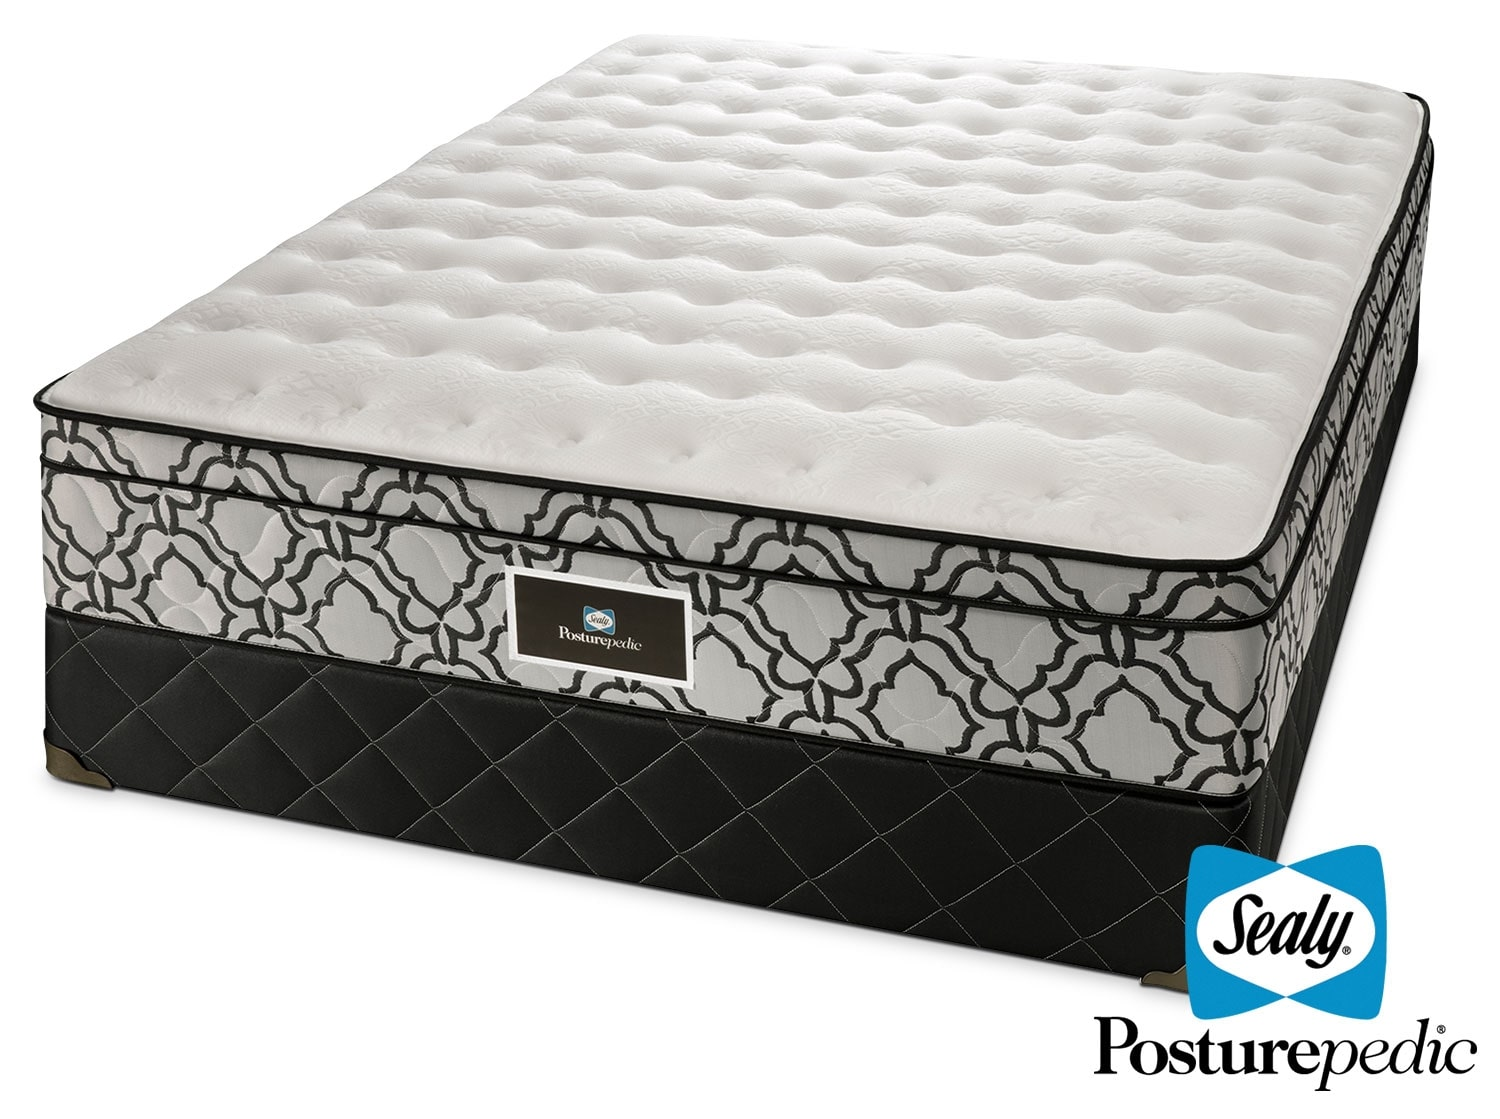 Sealy Colosseum Full Mattress/Boxspring Set